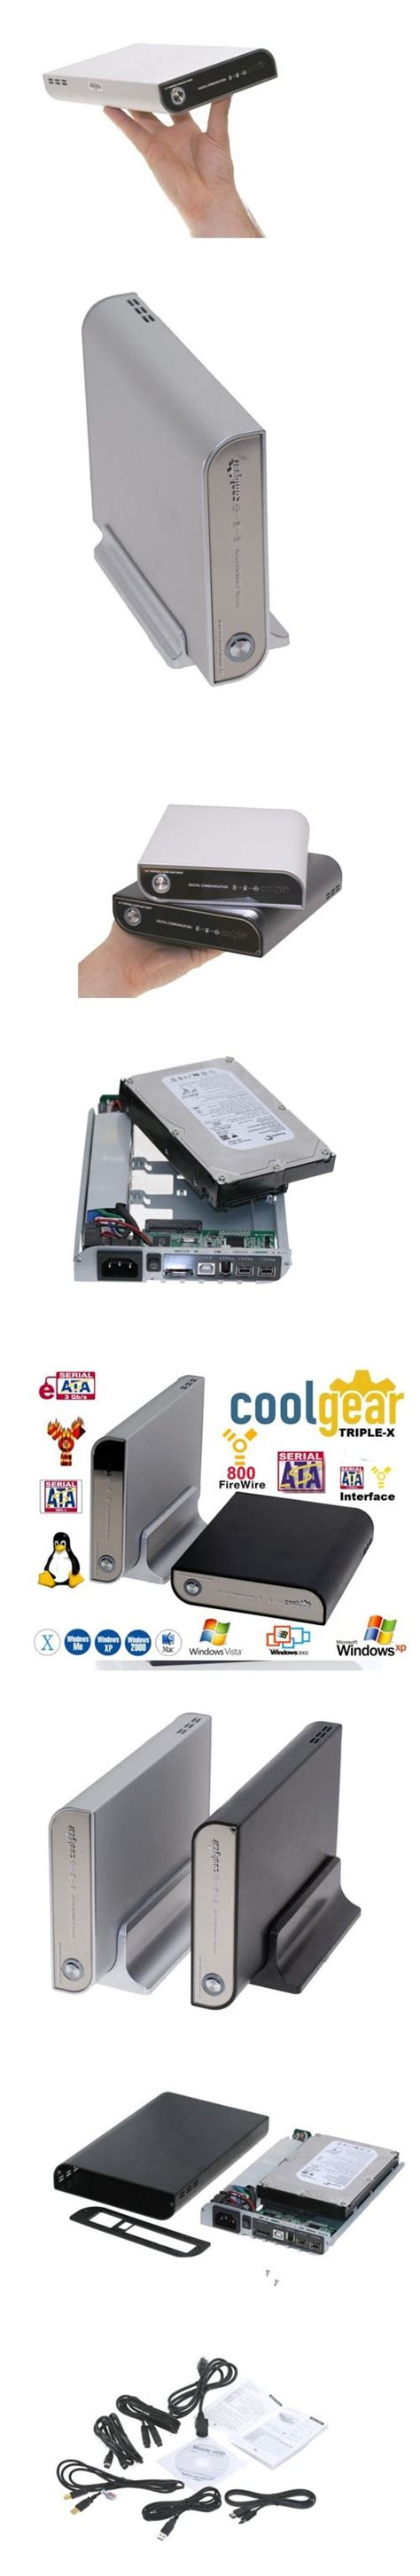 fan with ac built in 3 5 sata hdd enclosure with fan and built in ac adapter